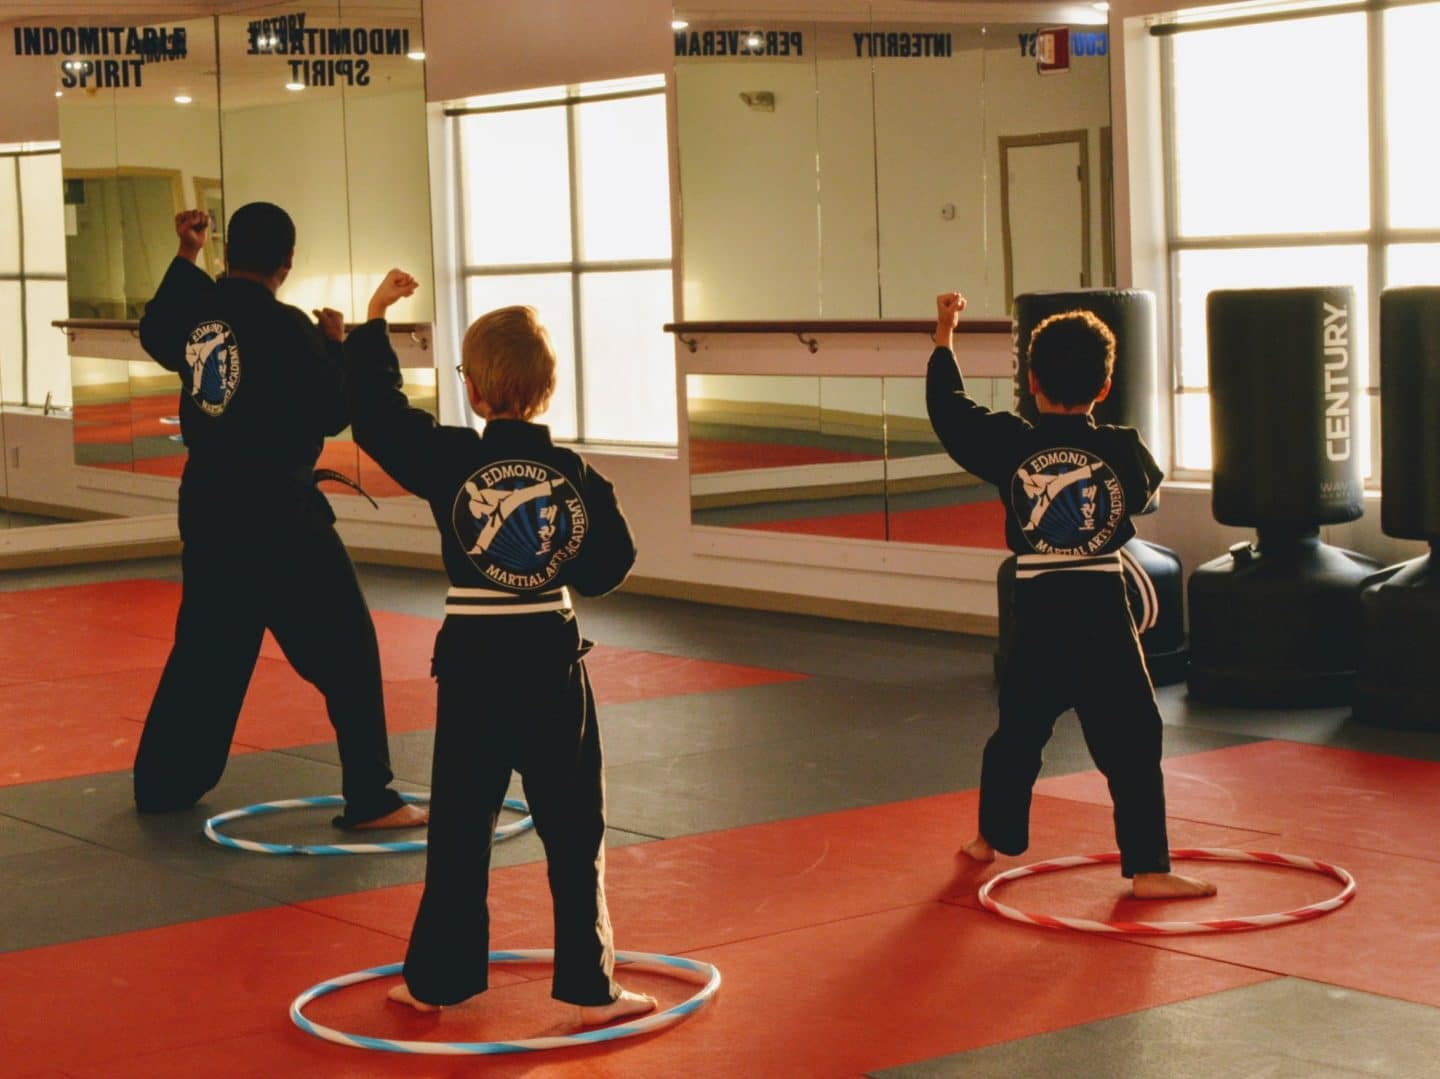 young taekwondo students practicing forms based on instructor's demonstration